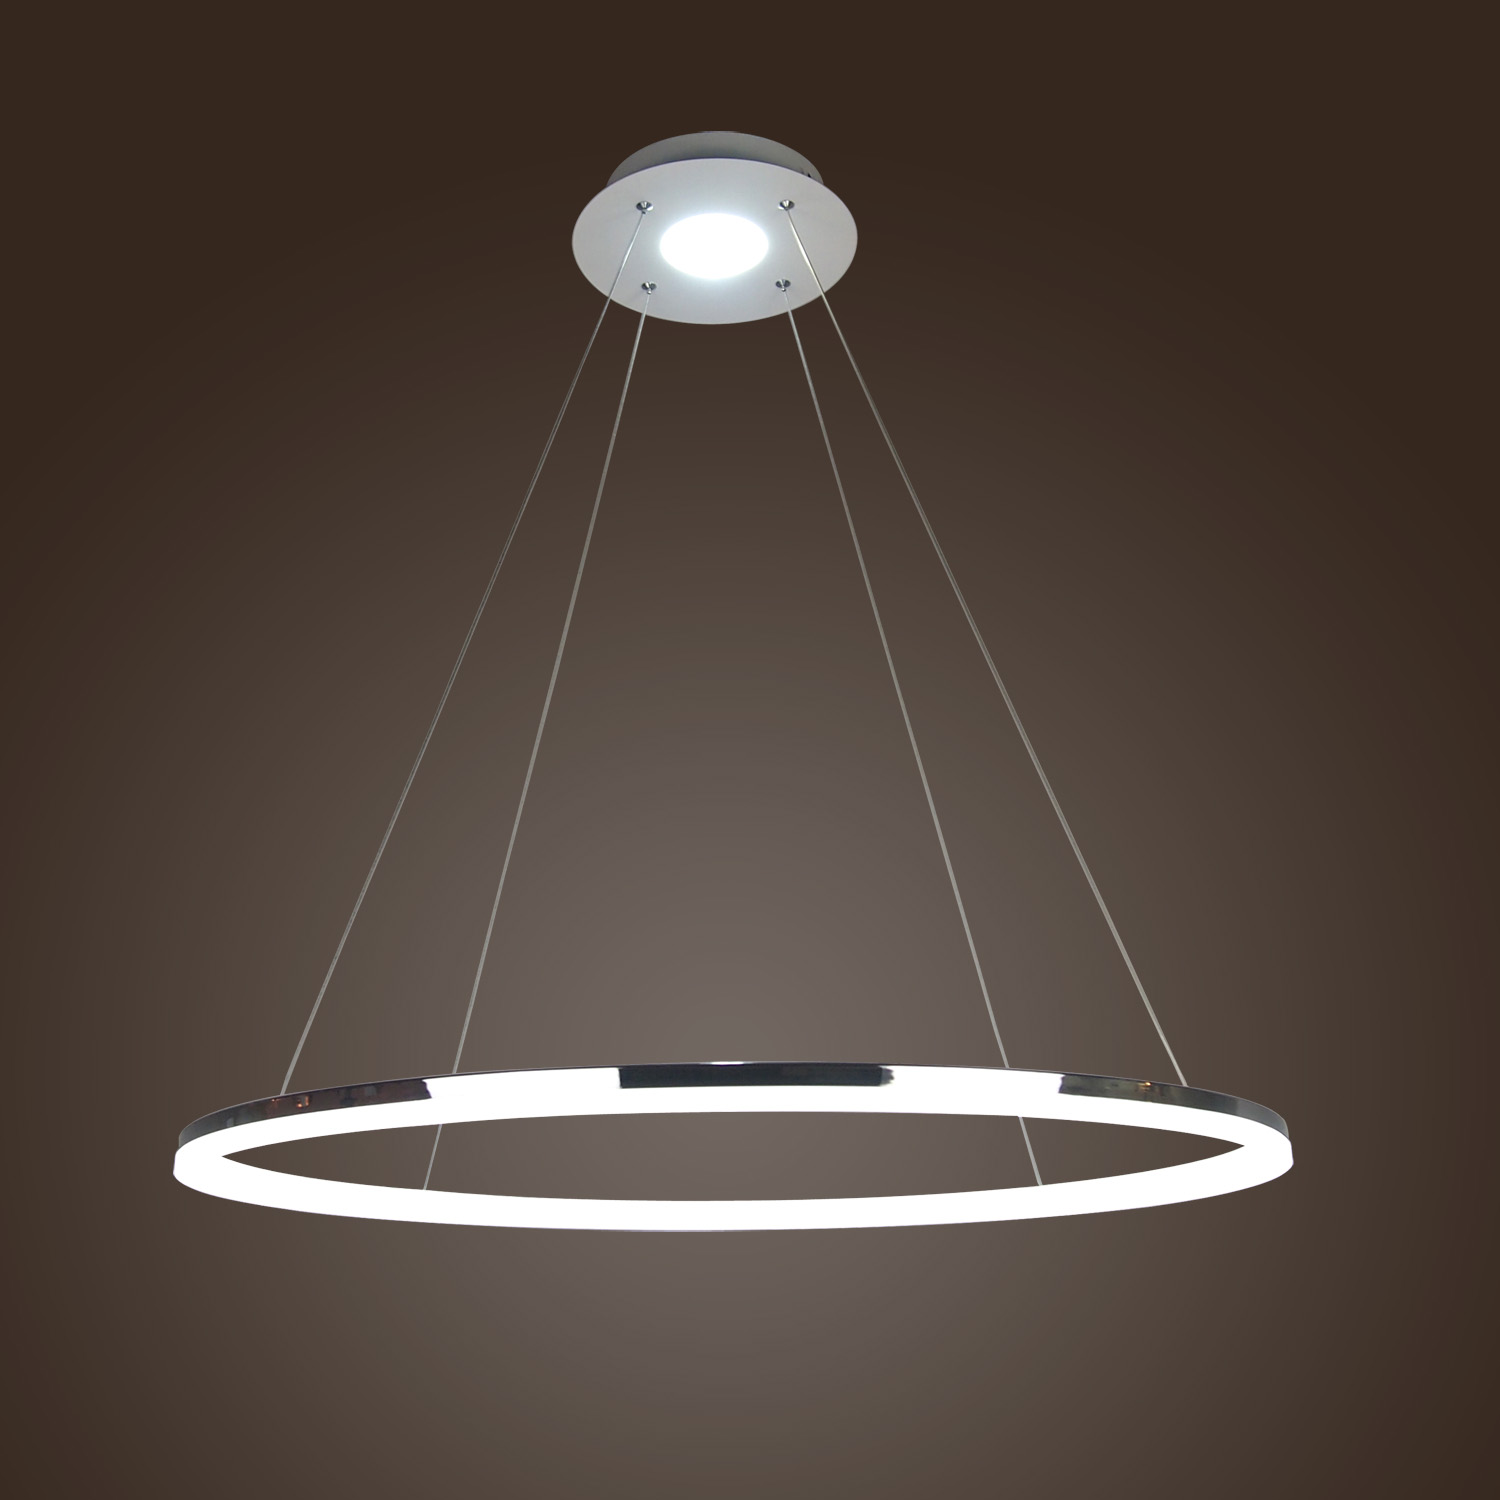 Lighting Products: Modern LED Acrylic Pendant Light Living LED Ring Lights